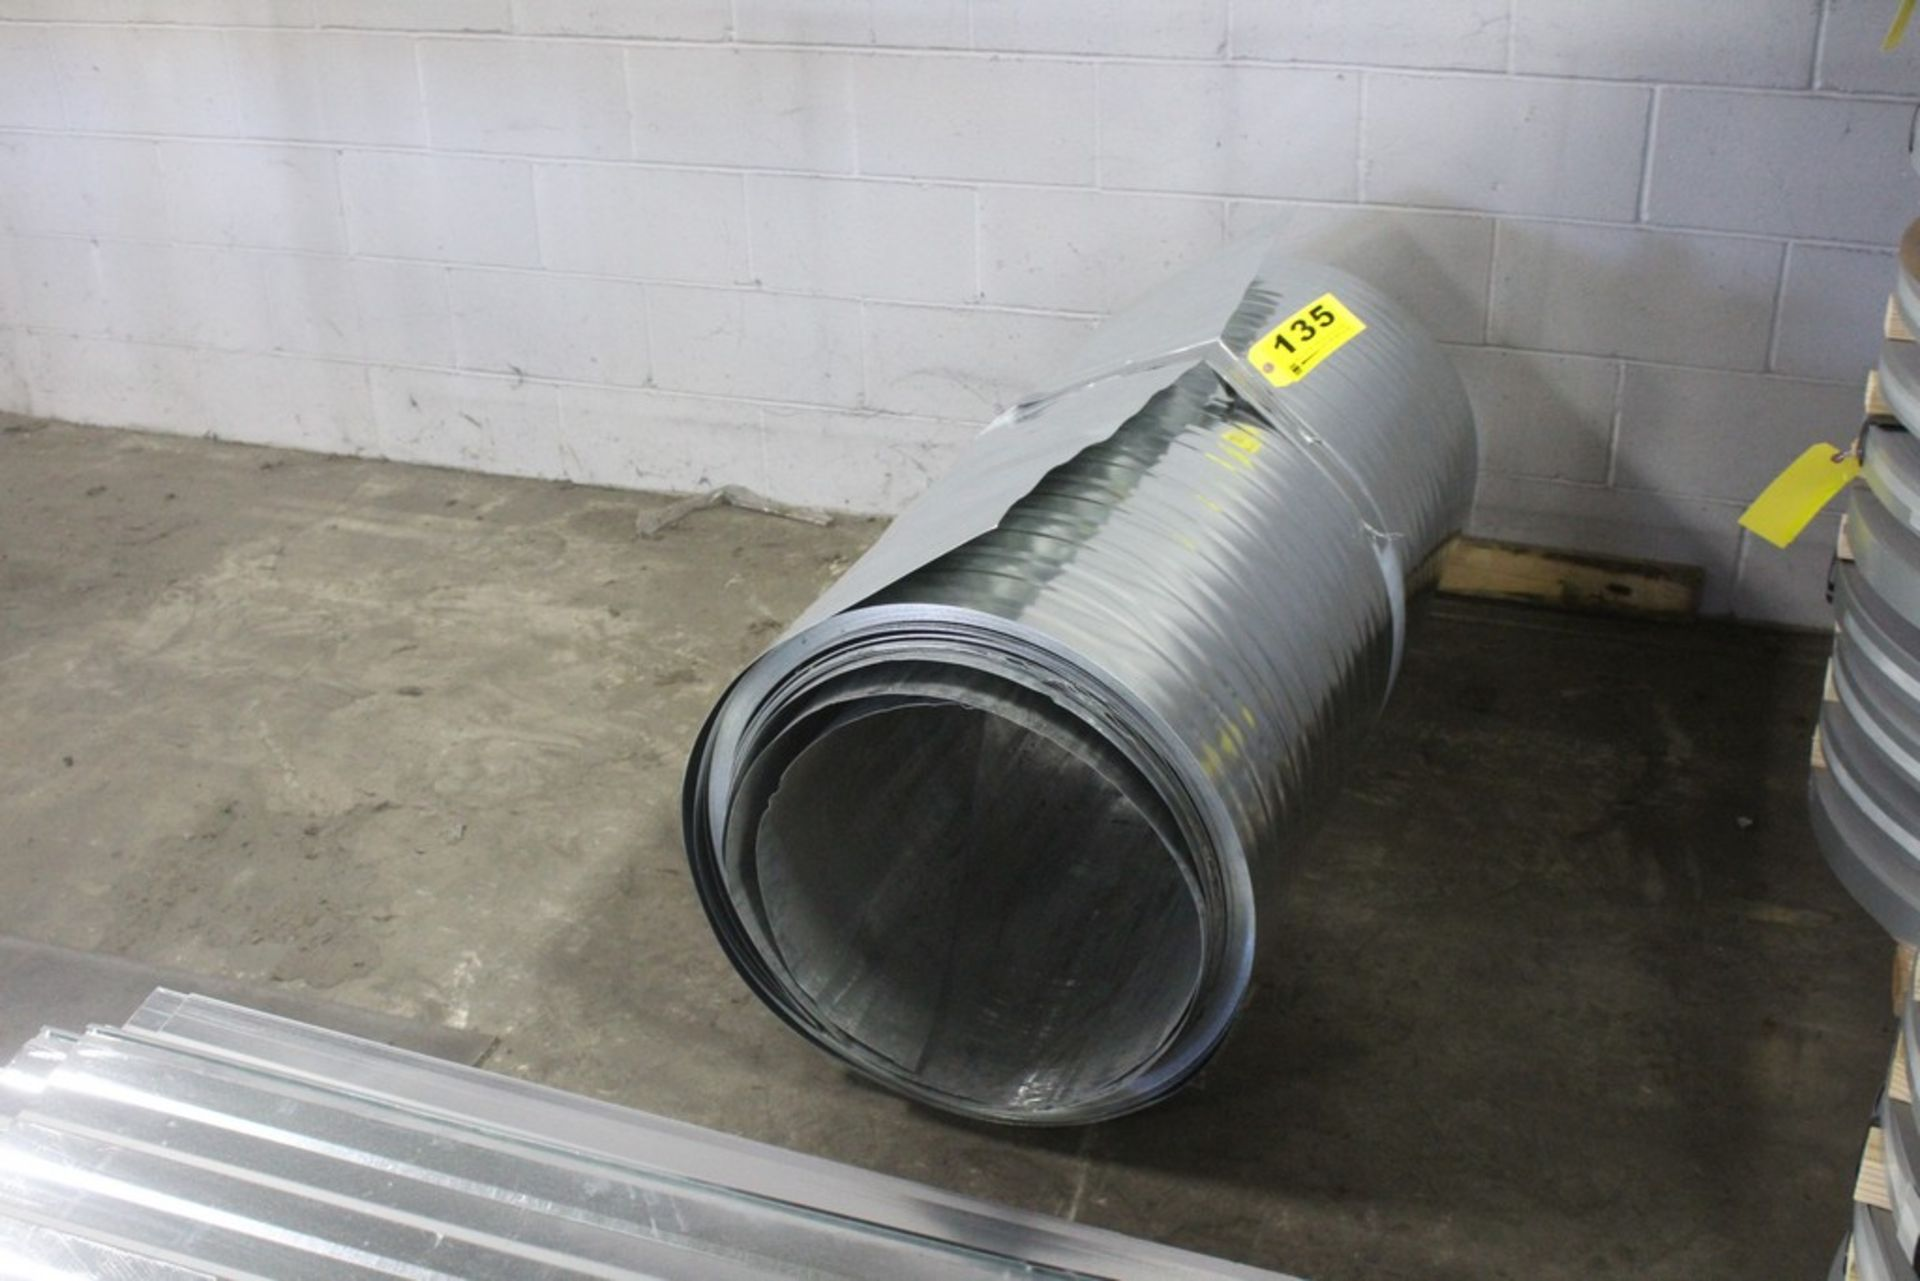 Lot 135 - Lot: Roof Material - Sheets and Rolled into a Coil